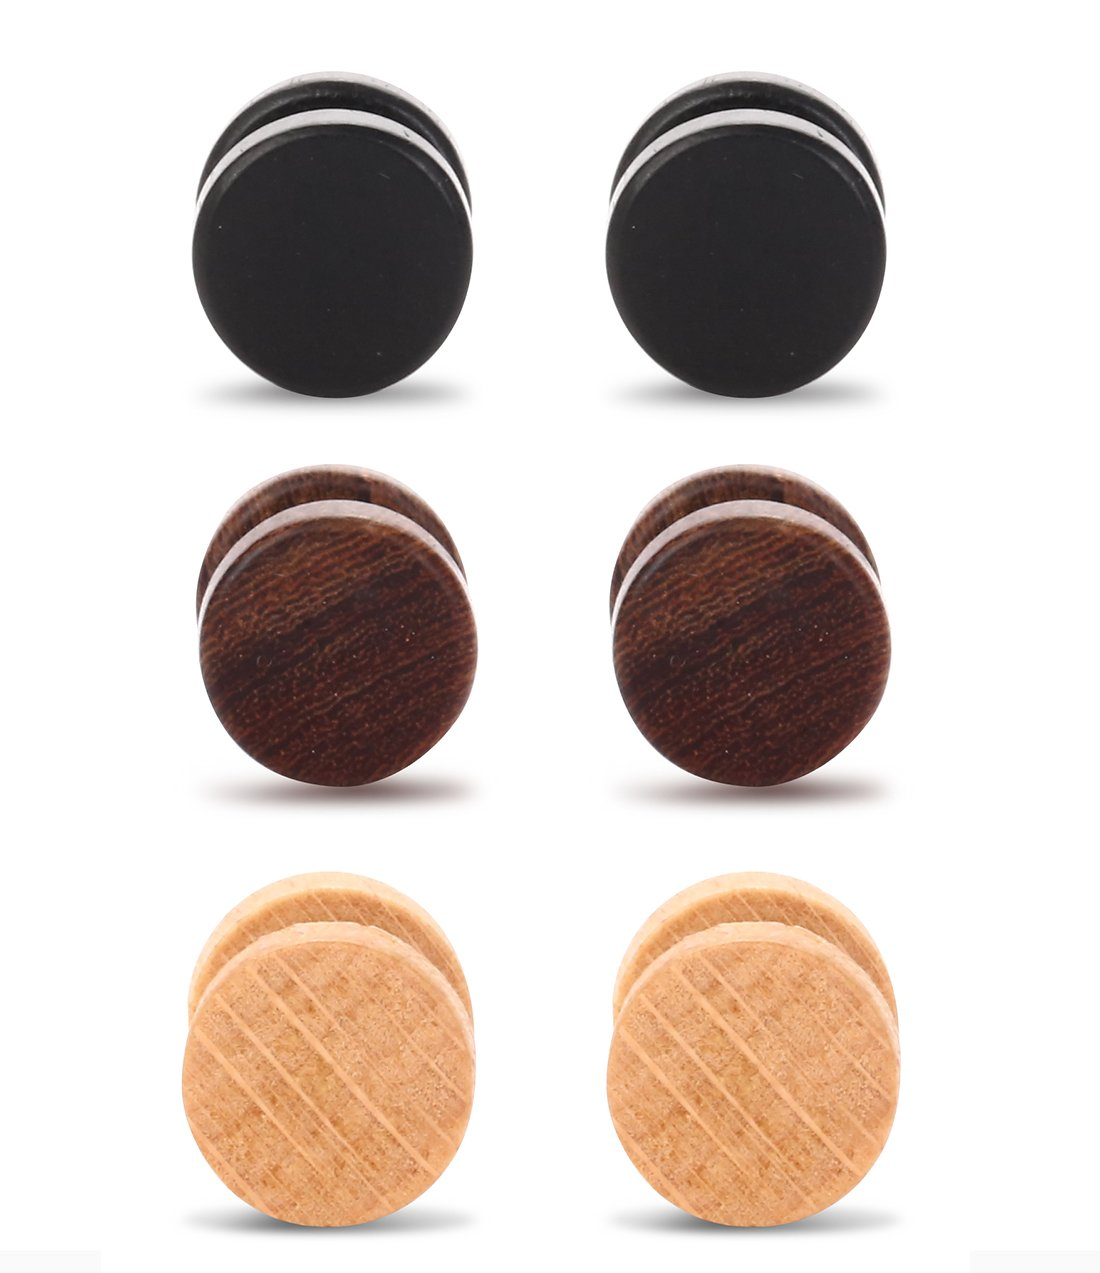 Tanyoyo Wood Cheater Fake Ear Plugs Gauges Illusion Screw Stud Earrings 3-6 pair a set B07FJMJ2V5_US